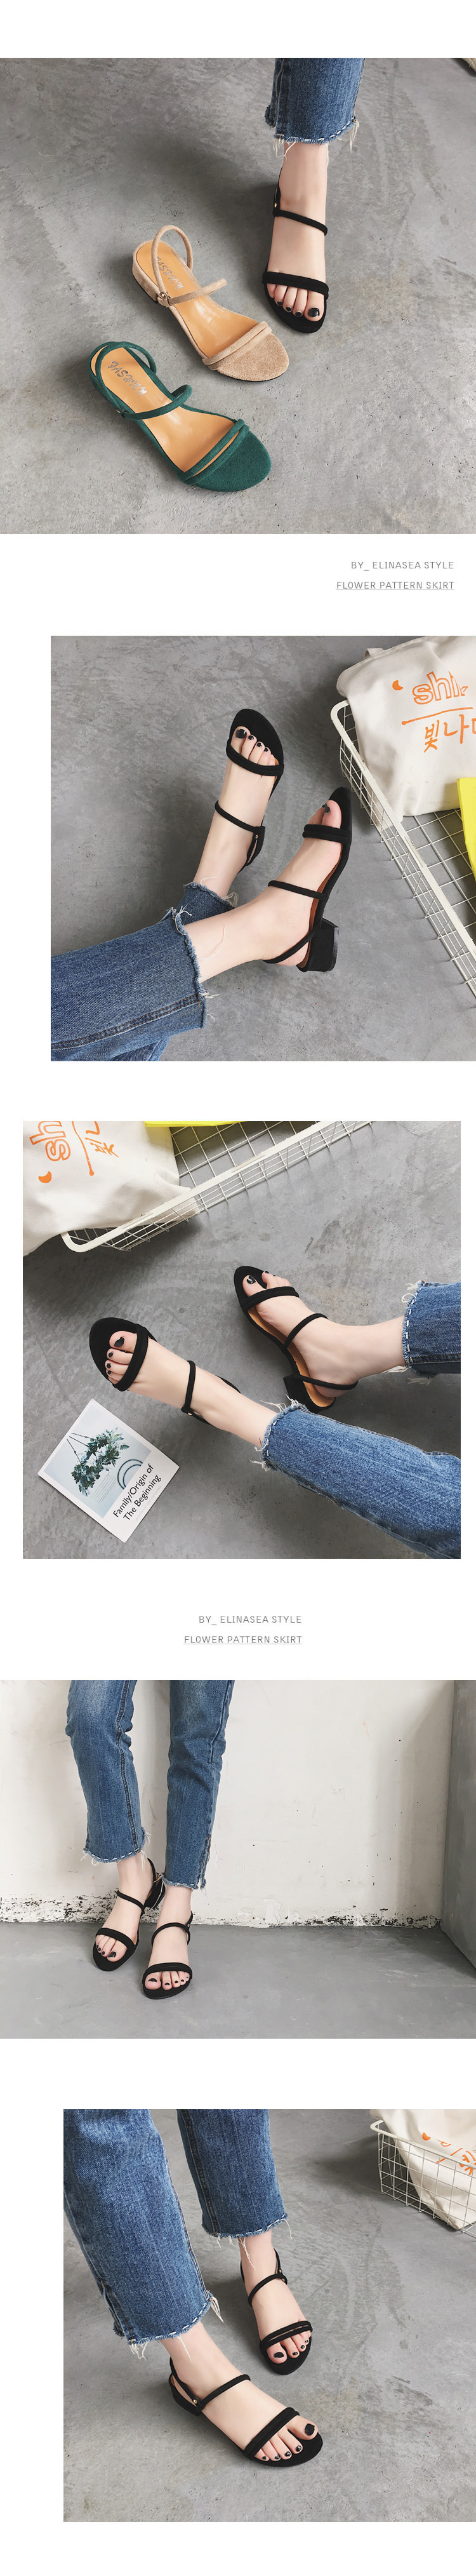 HTB1uPIktH5YBuNjSspoq6zeNFXaU new Flat outdoor slippers Sandals foot ring straps beaded Roman sandals fashion low slope with women's shoes low heel shoes x69